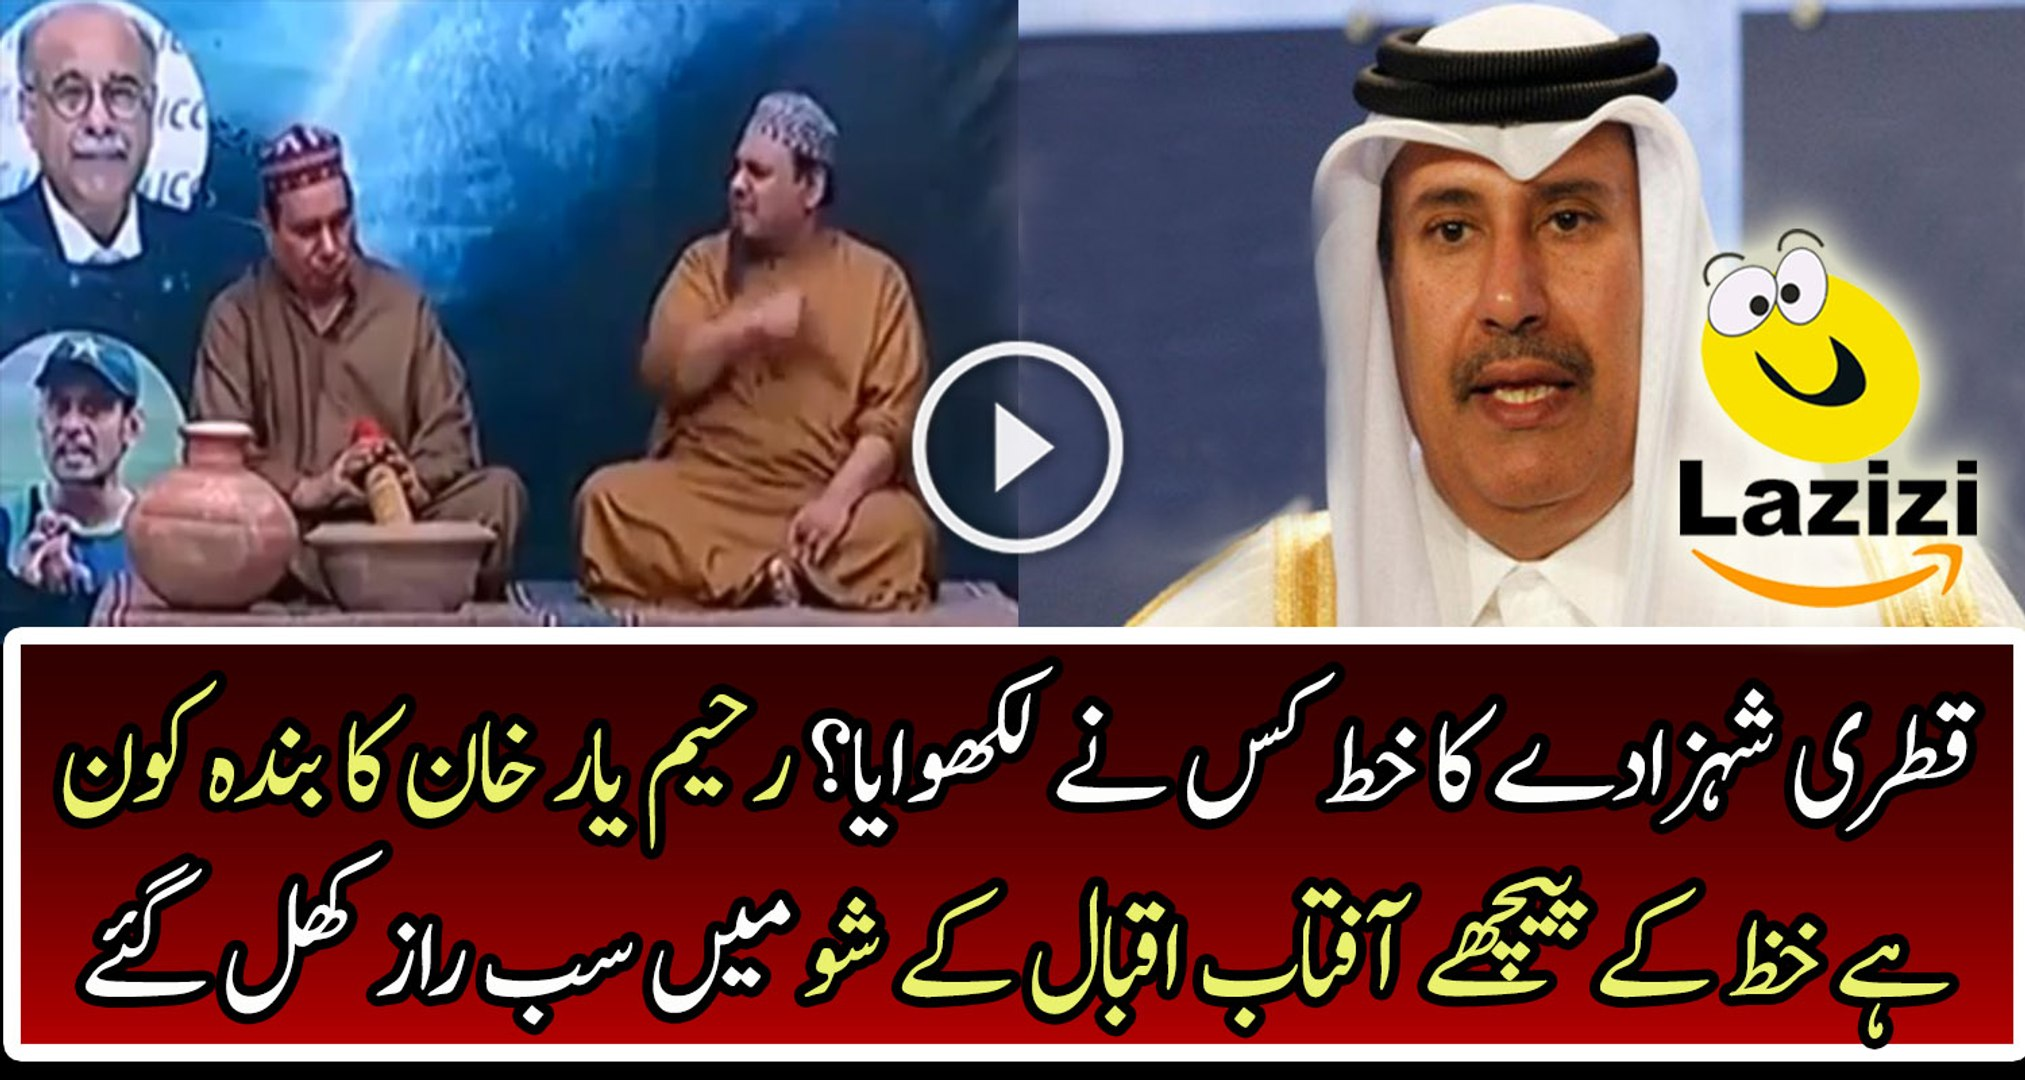 A Person From Rahim Yar Khan is Involved in Qatar Prince's Letter